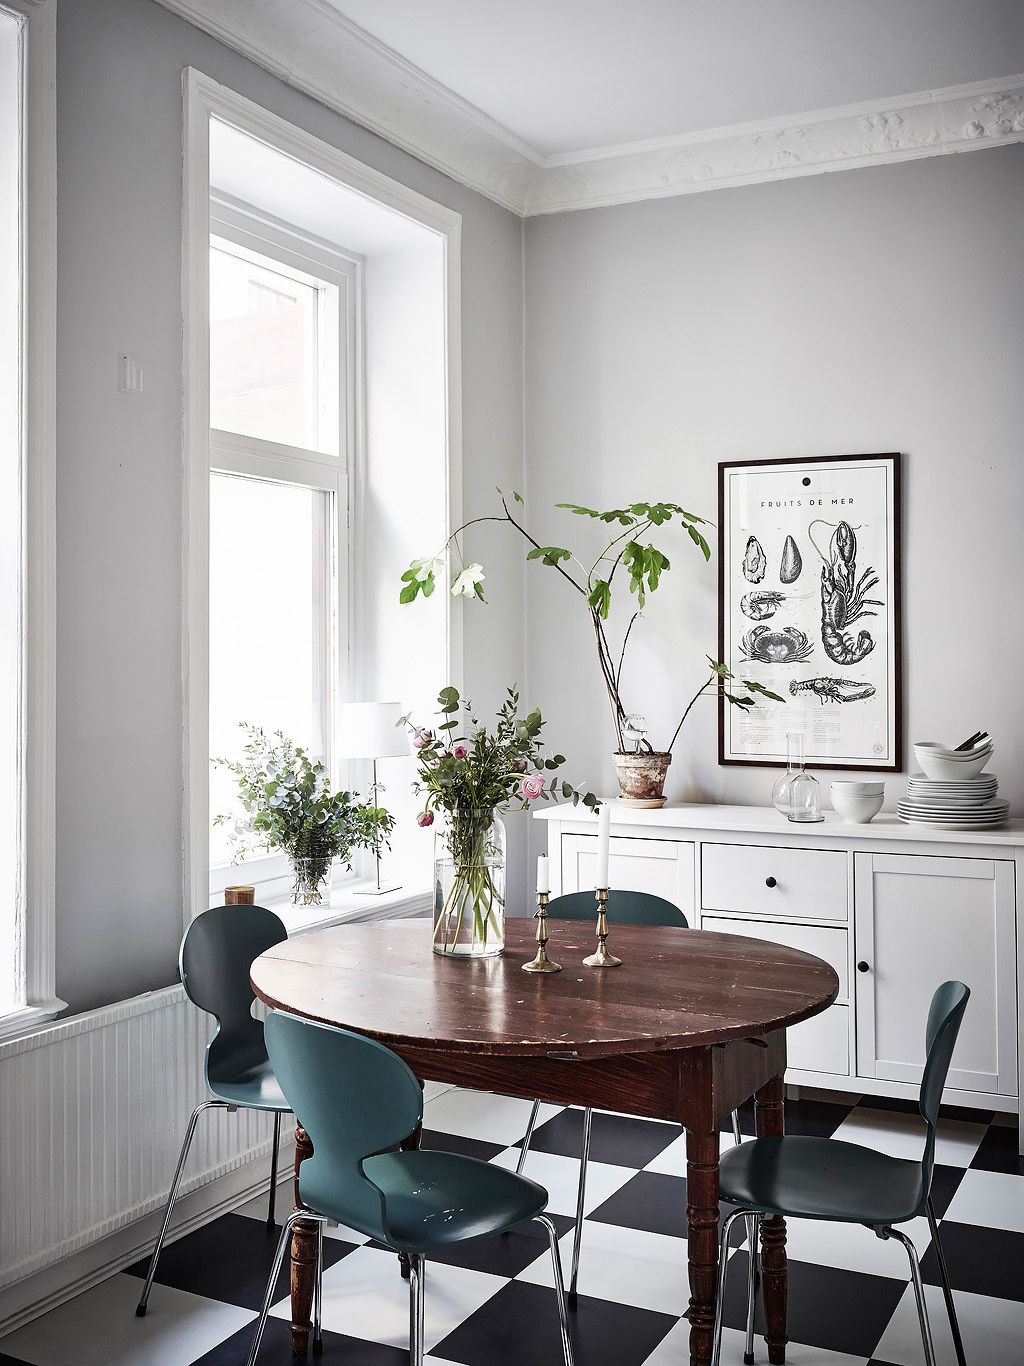 Le Dimanche C Est Scandinavie Planete Deco A Homes World Vintage Dining Room Apartment Dining Room Dining Room Inspiration